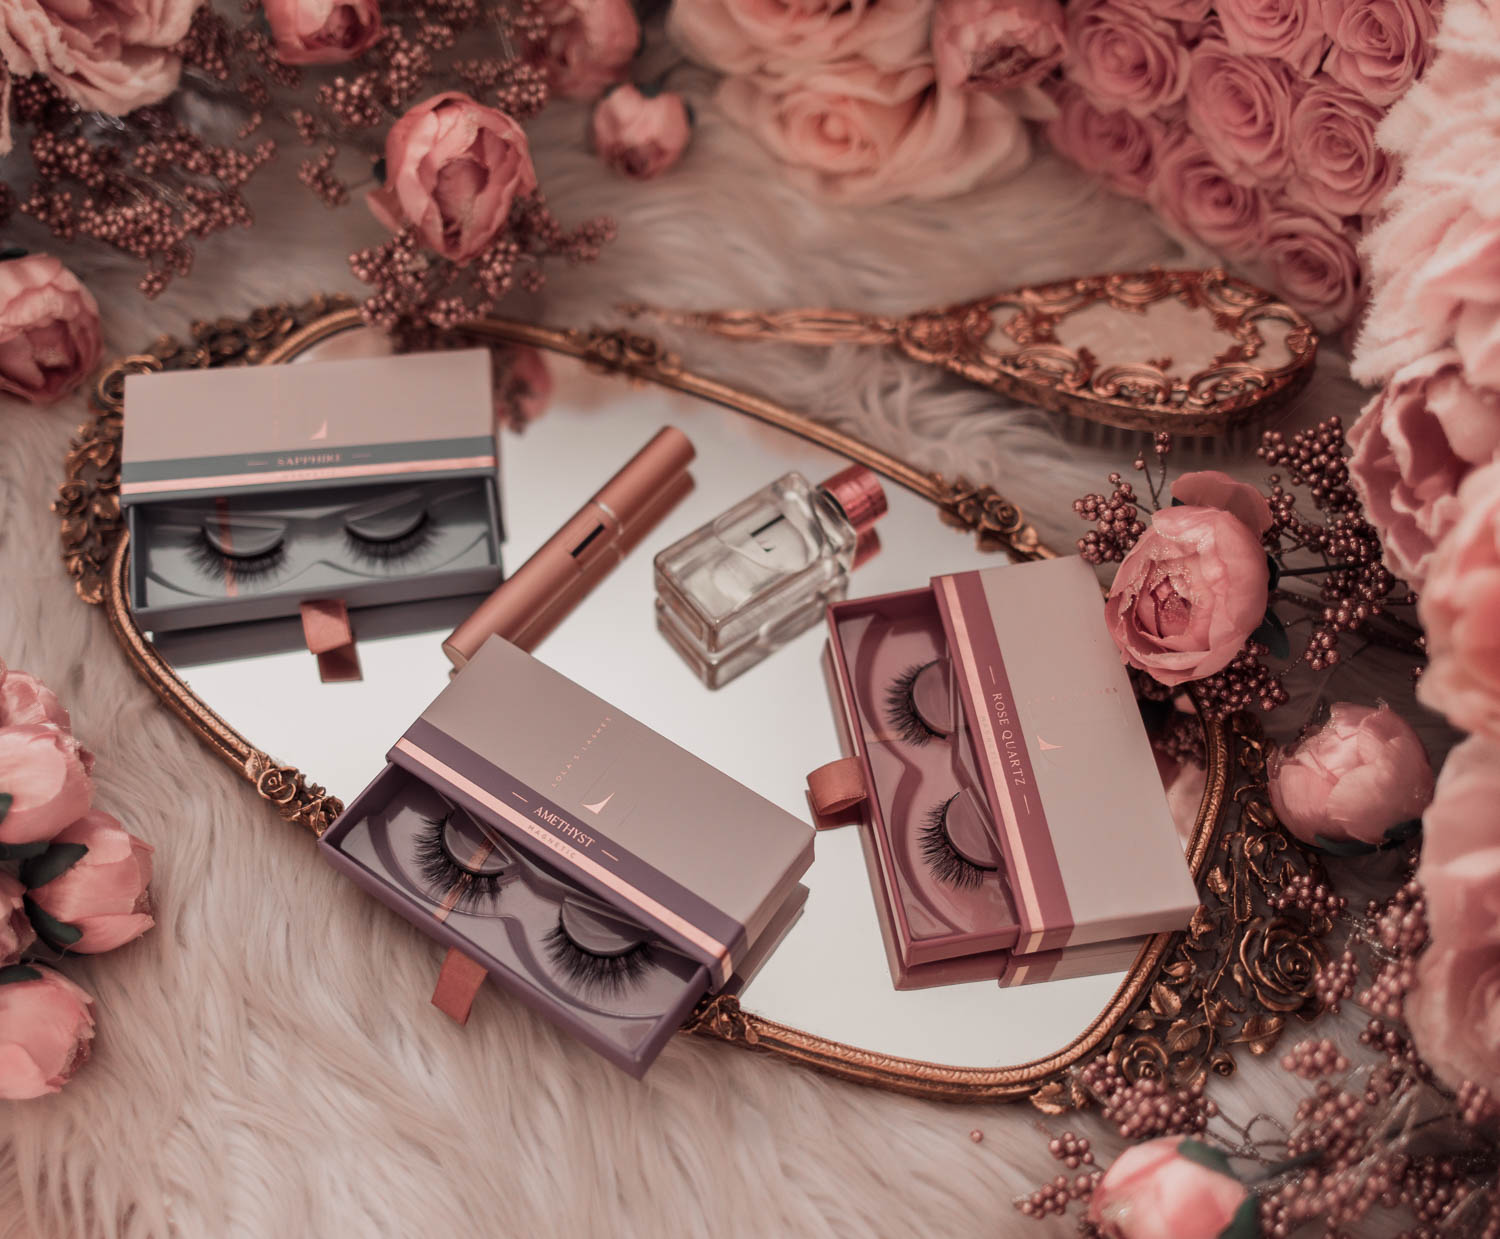 Feminine fashion blogger Elizabeth Hugen of Lizzie in Lace shares the Best Mother's Day gift ideas in her Mother's Day gift guide including these Lola's Lashes magnetic lashes